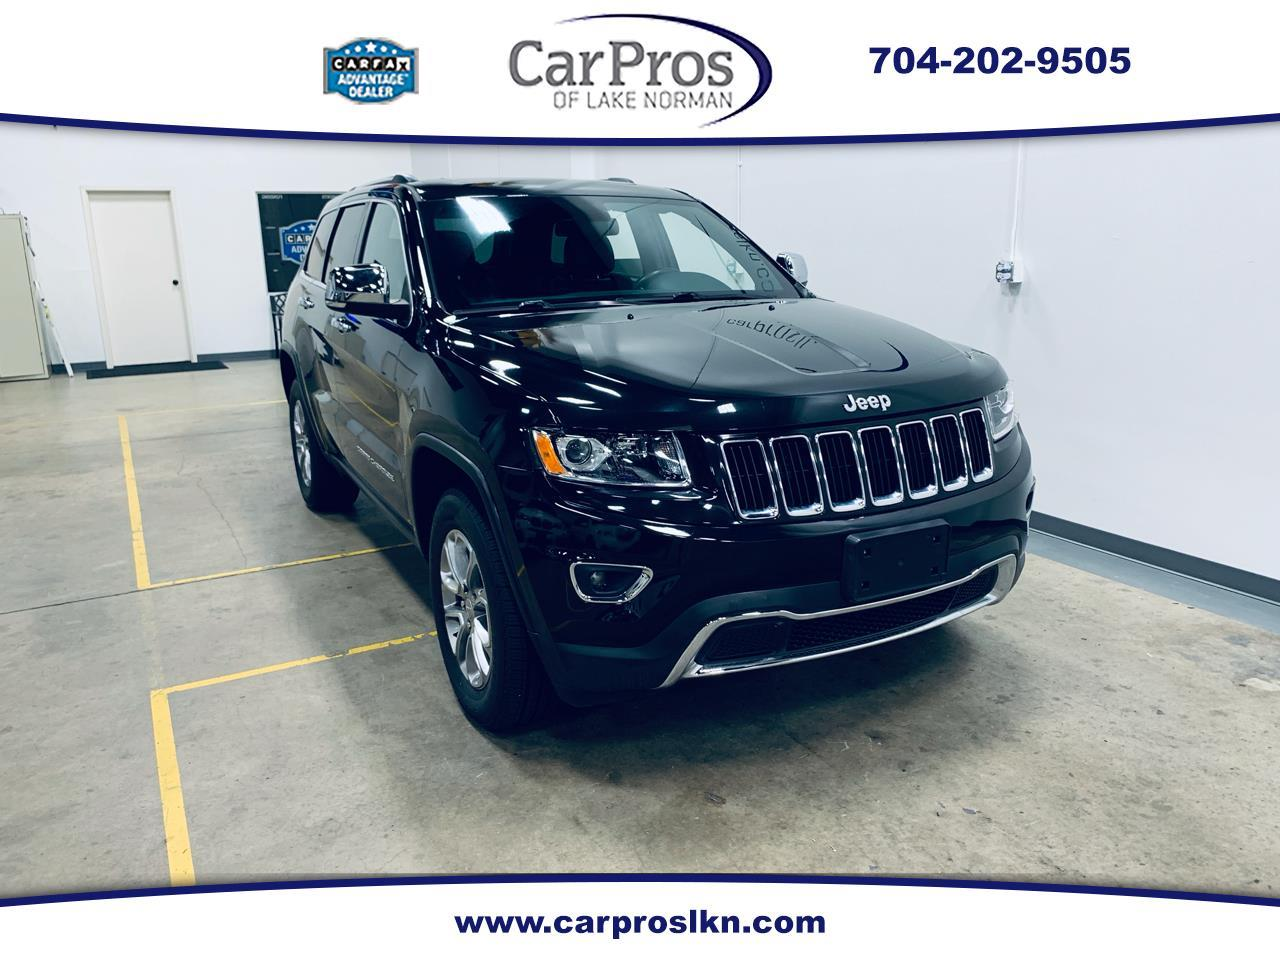 Large Picture of 2015 Jeep Grand Cherokee - $26,240.00 Offered by Car Pros of Lake Norman - QK7I